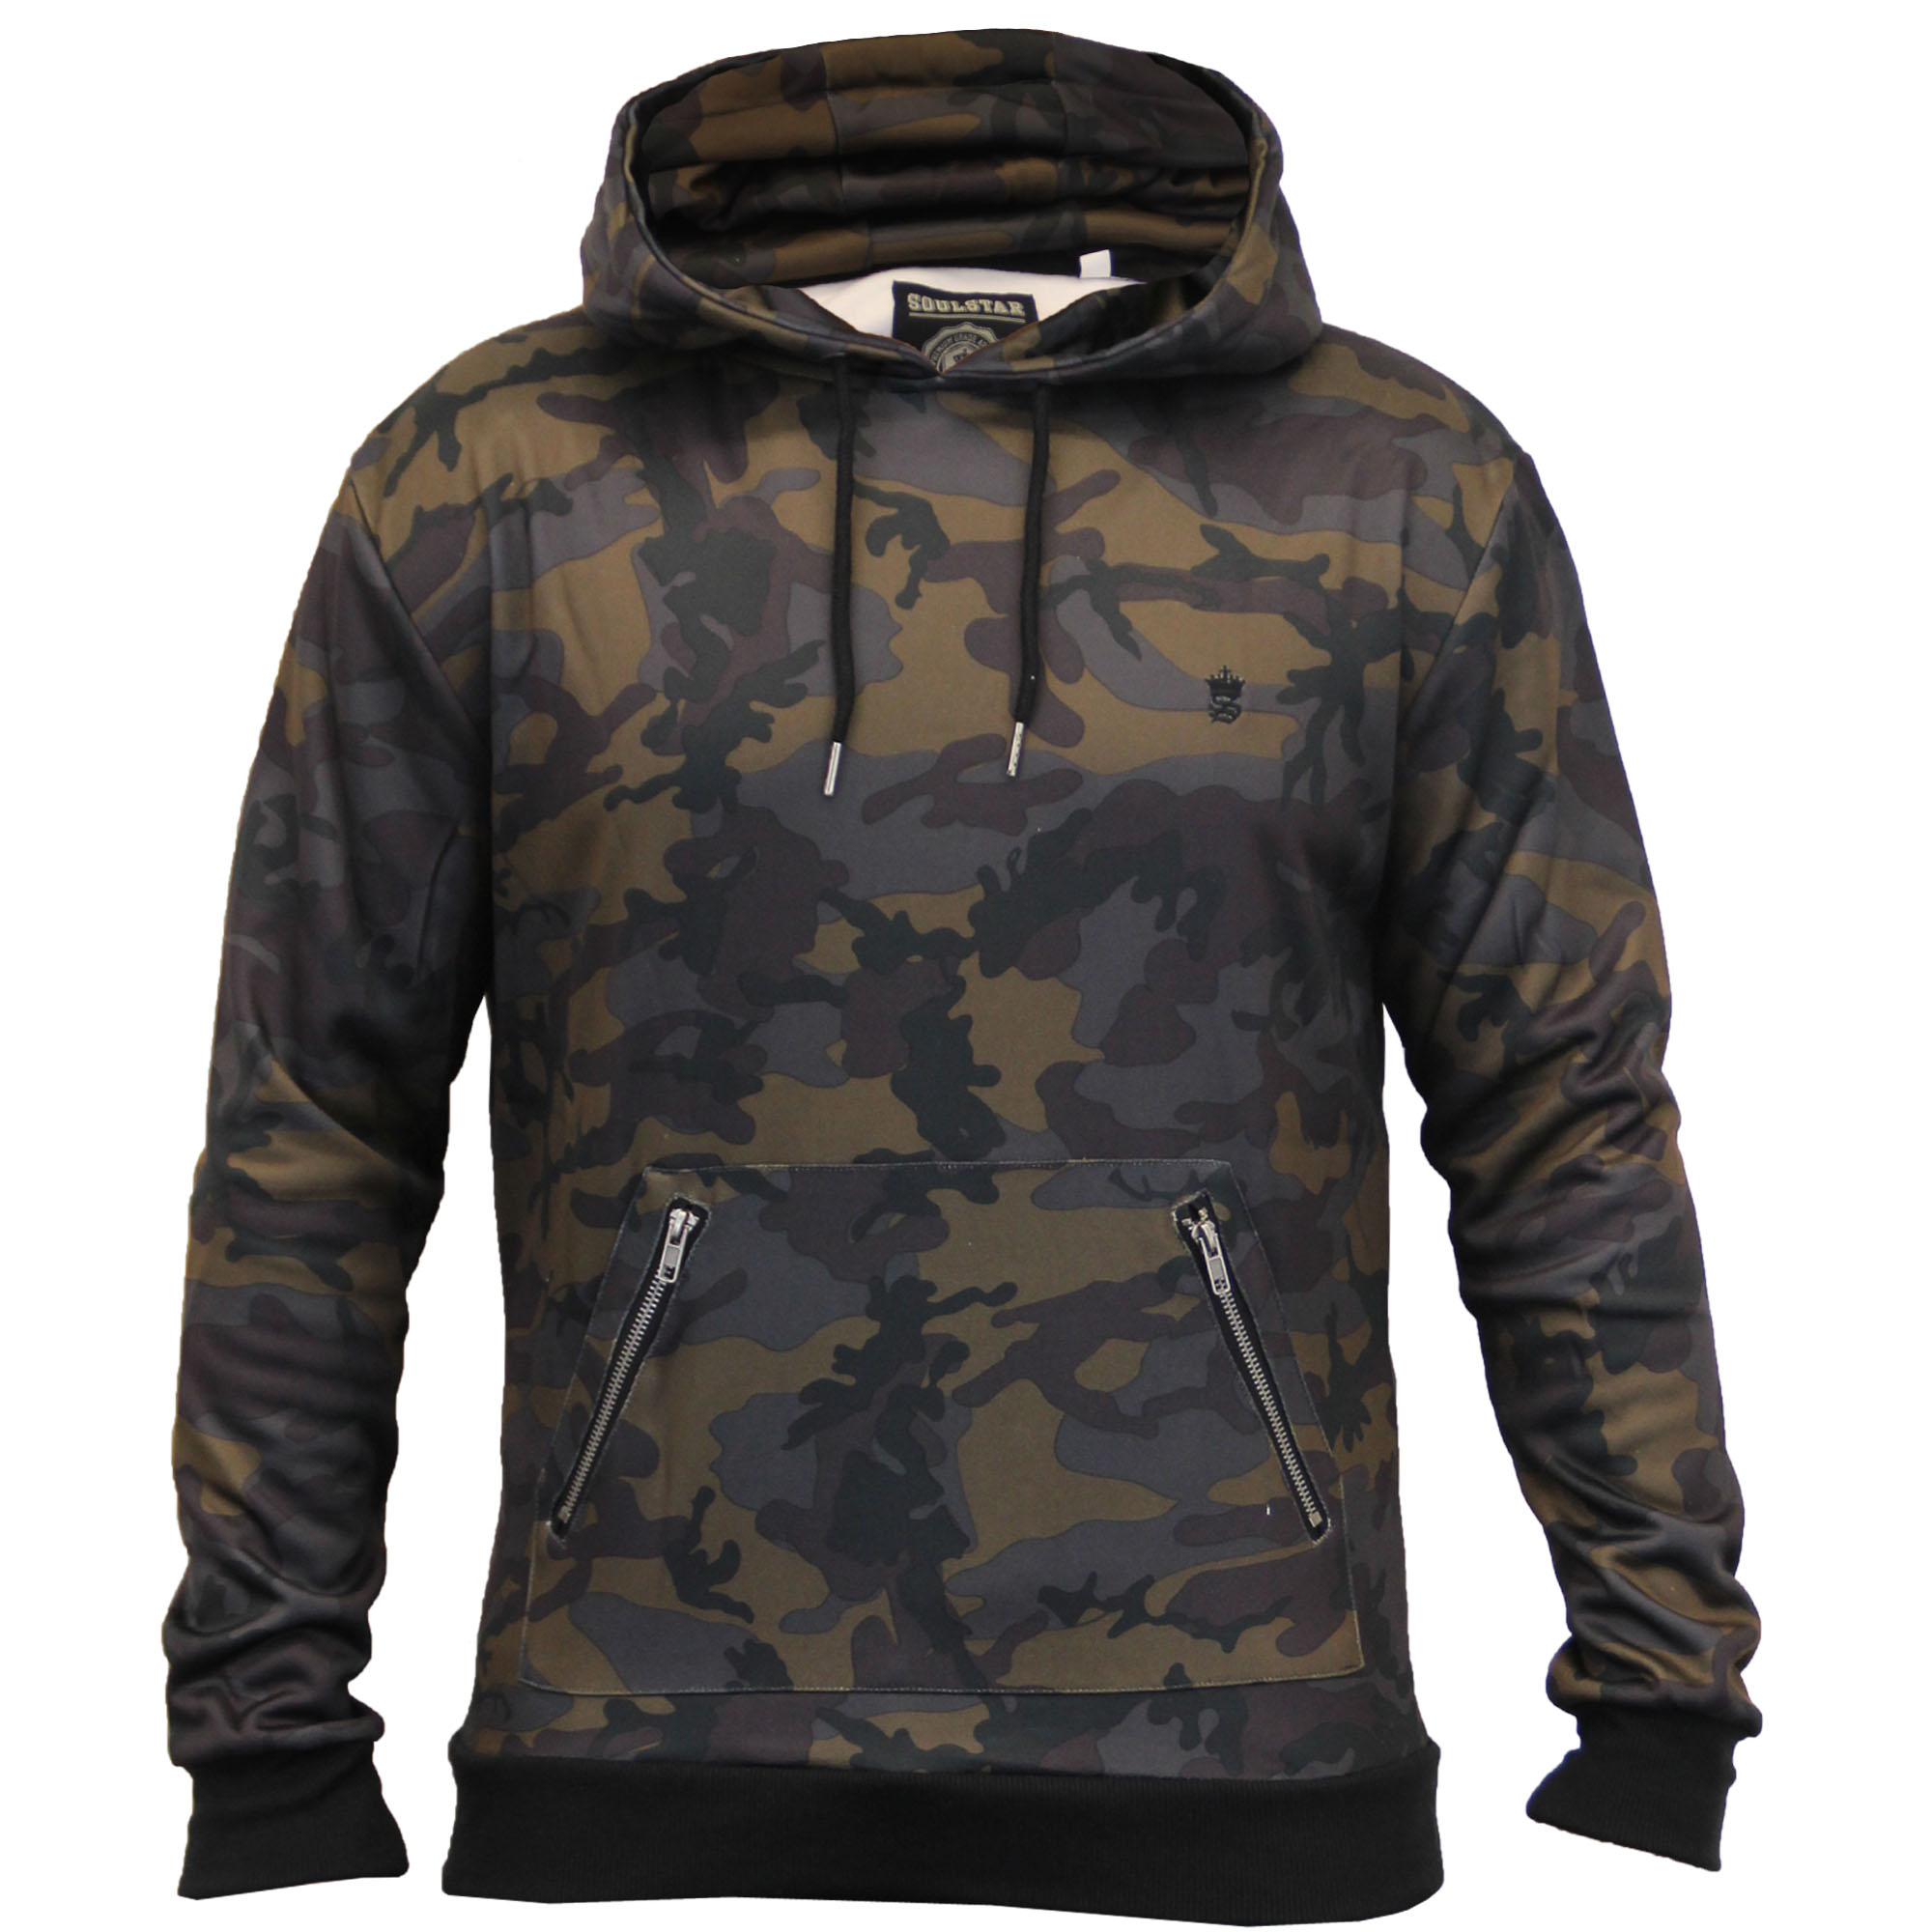 Mens Military Jackets U.S. Marines Mens Reversible 2-In-1 Hoodie The United States Marine Corps have always fought for the freedom of this great nation with undying loyalty and bravery.